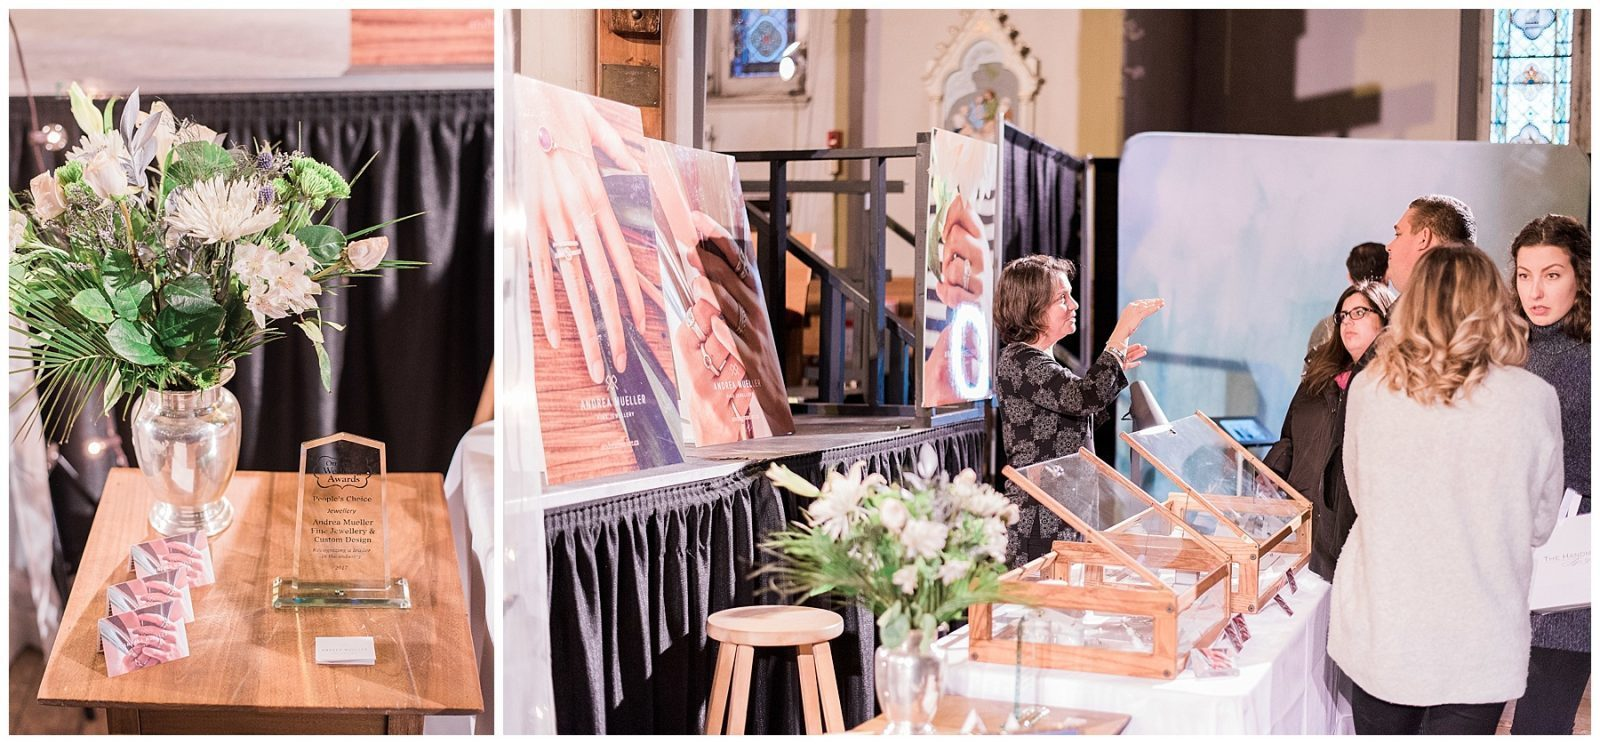 'Best day ever wedding show ottawa - st.bridgids church byward market'